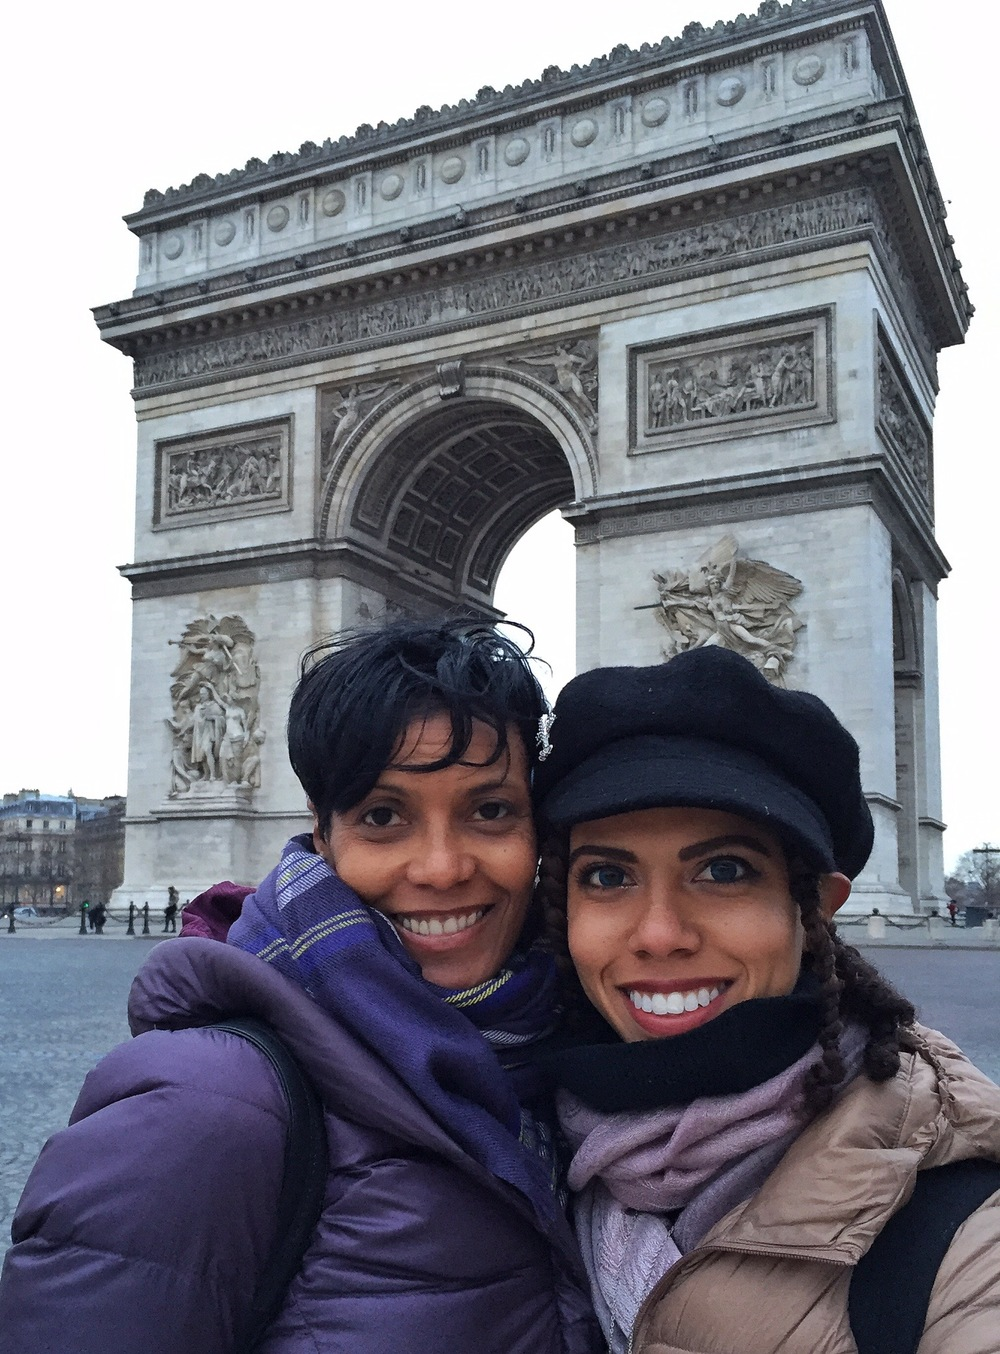 In front of the Arc de Triomphe